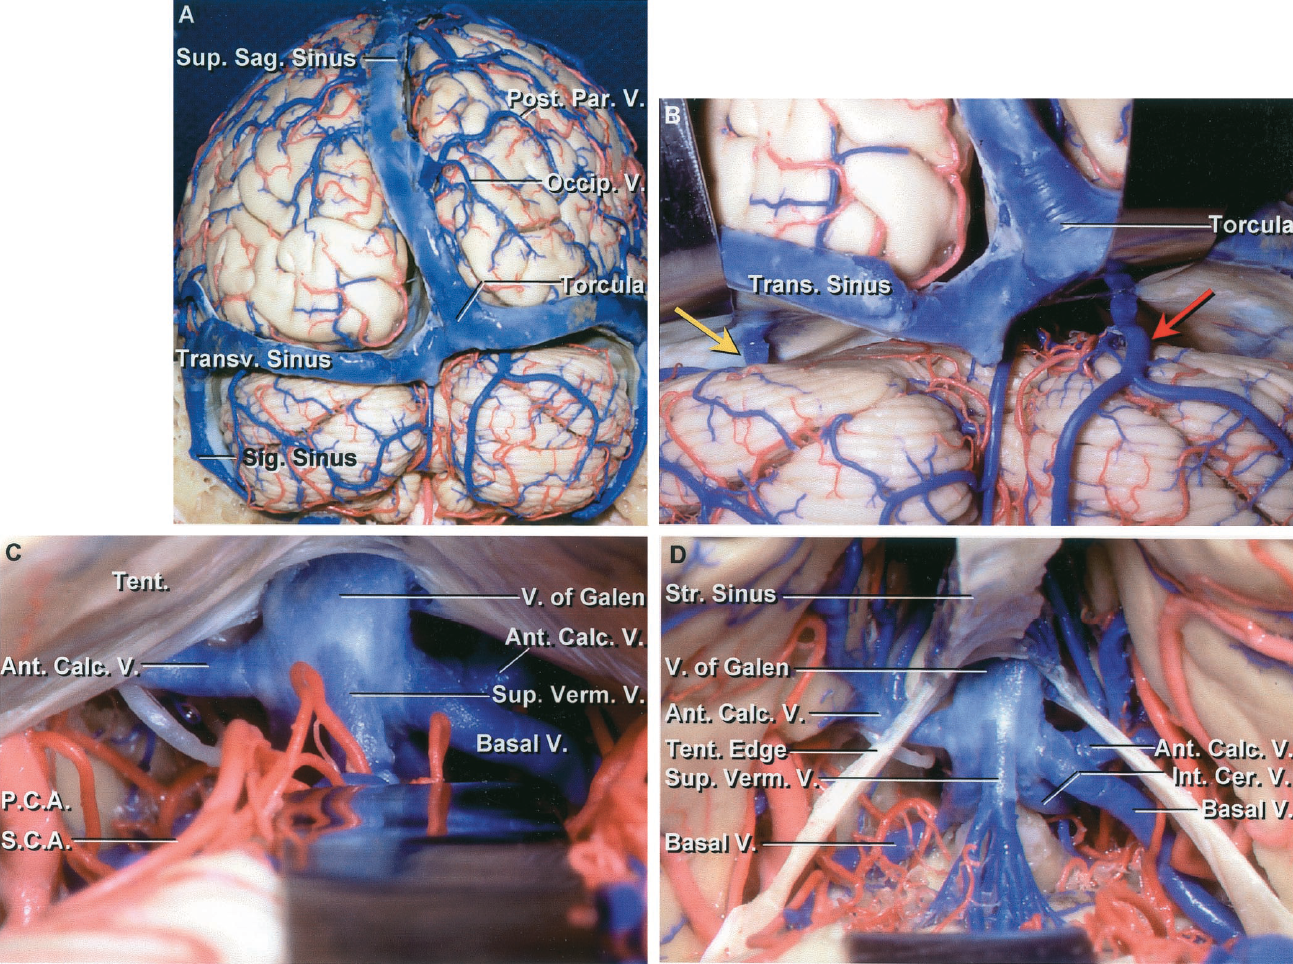 FIGURE 4.9. Posterior view of the cerebral and cerebellar hemispheres. A, the superior sagittal sinus is connected through the torcular herophili with the transverse sinuses. The right transverse sinus is slightly larger than the left. The veins arising along the posterior part of the hemisphere are directed forward and join the superior sagittal sinus well above the torcular herophili, leaving a void along the medial occipital lobe where there are no bridging veins emptying into the sinus. B, the tentorium has been elevated to show the veins from the cerebellum forming bridging veins that enter the sinuses in the lower margin of the tentorium. On the left side, a large vein (yellow arrow) passes from the superior surface of the cerebellar hemisphere to enter a tentorial sinus. On the right side, a large bridging vein from the suboccipital cerebellar surface (red arrow) turns forward on the superior surface and empties into a tentorial sinus in front of the torcular herophili. C, view below the tentorium. The vein of Galen empties into the straight sinus. A large superior vermian vein empties into the vein of Galen. The right basal and the right and left anterior calcarine veins are exposed. The left basal vein is hidden in front of the left superior cerebellar artery. D, the tentorium has been removed, while preserving the straight sinus and the tentorial edge. The vein of Galen and its tributaries are exposed in the quadrigeminal cistern. Both basal veins are exposed. Large anterior calcarine veins drain the calcarine sulcus and adjacent part of the atrium. The branches of the posterior cerebral artery course in the upper part of the quadrigeminal cistern and the branches of the superior cerebellar artery course in the lower part. Ant., anterior; Calc., calcarine; Cer., cerebral; Int., internal; Occip., occipital; Par., parietal; P.C.A., posterior cerebral artery; Post., posterior; Sag., sagittal; S.C.A., superior cerebellar artery; Sig., sigmoid; Str., straight; Sup., superior; Tent., tentorium, tentorial; Trans., Transv., transverse; V., vein; Verm., vermian.